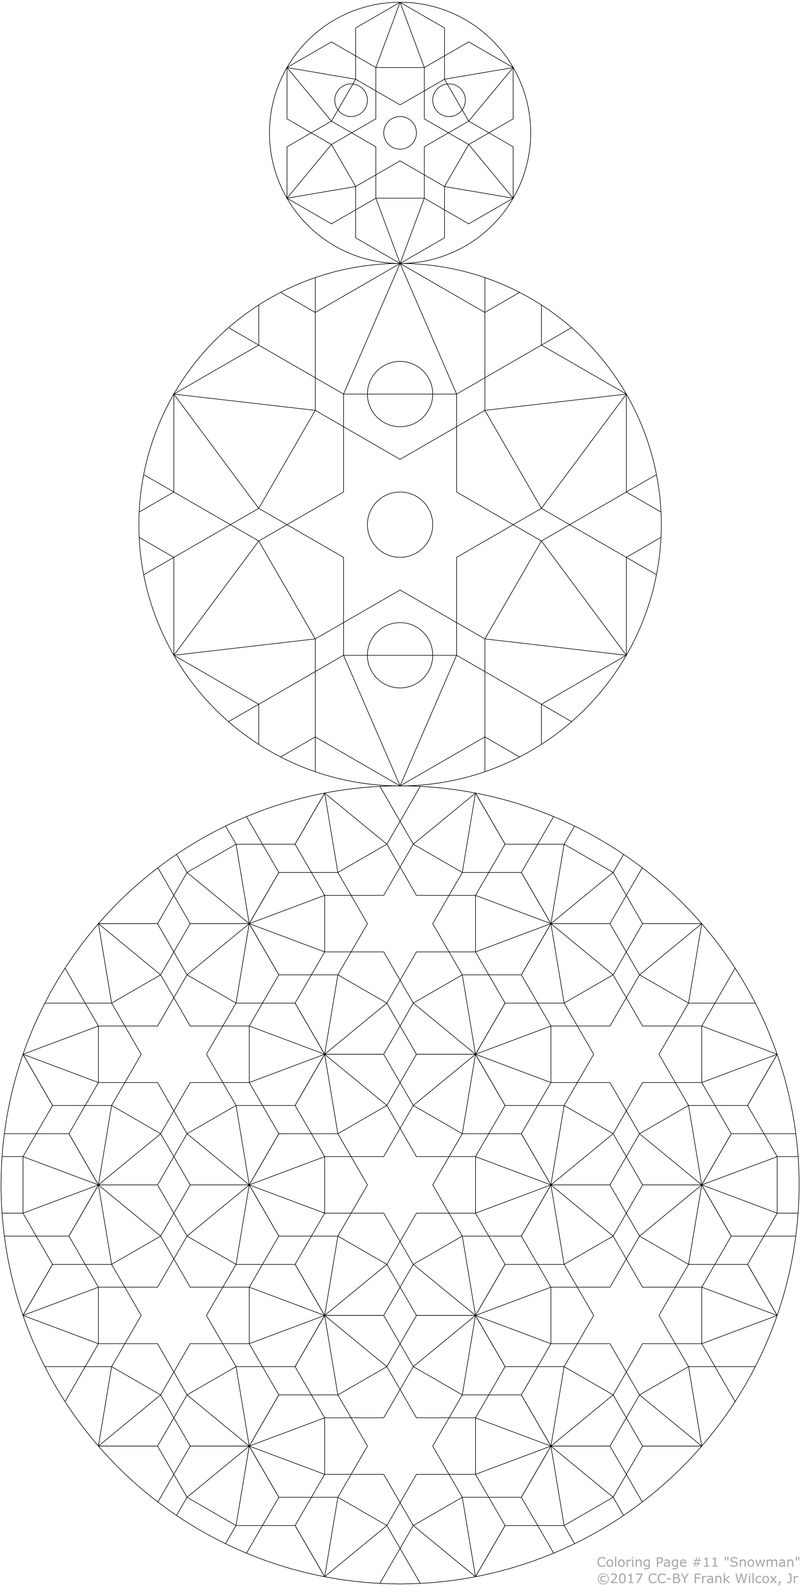 Coloring Page #11 'Snowman'